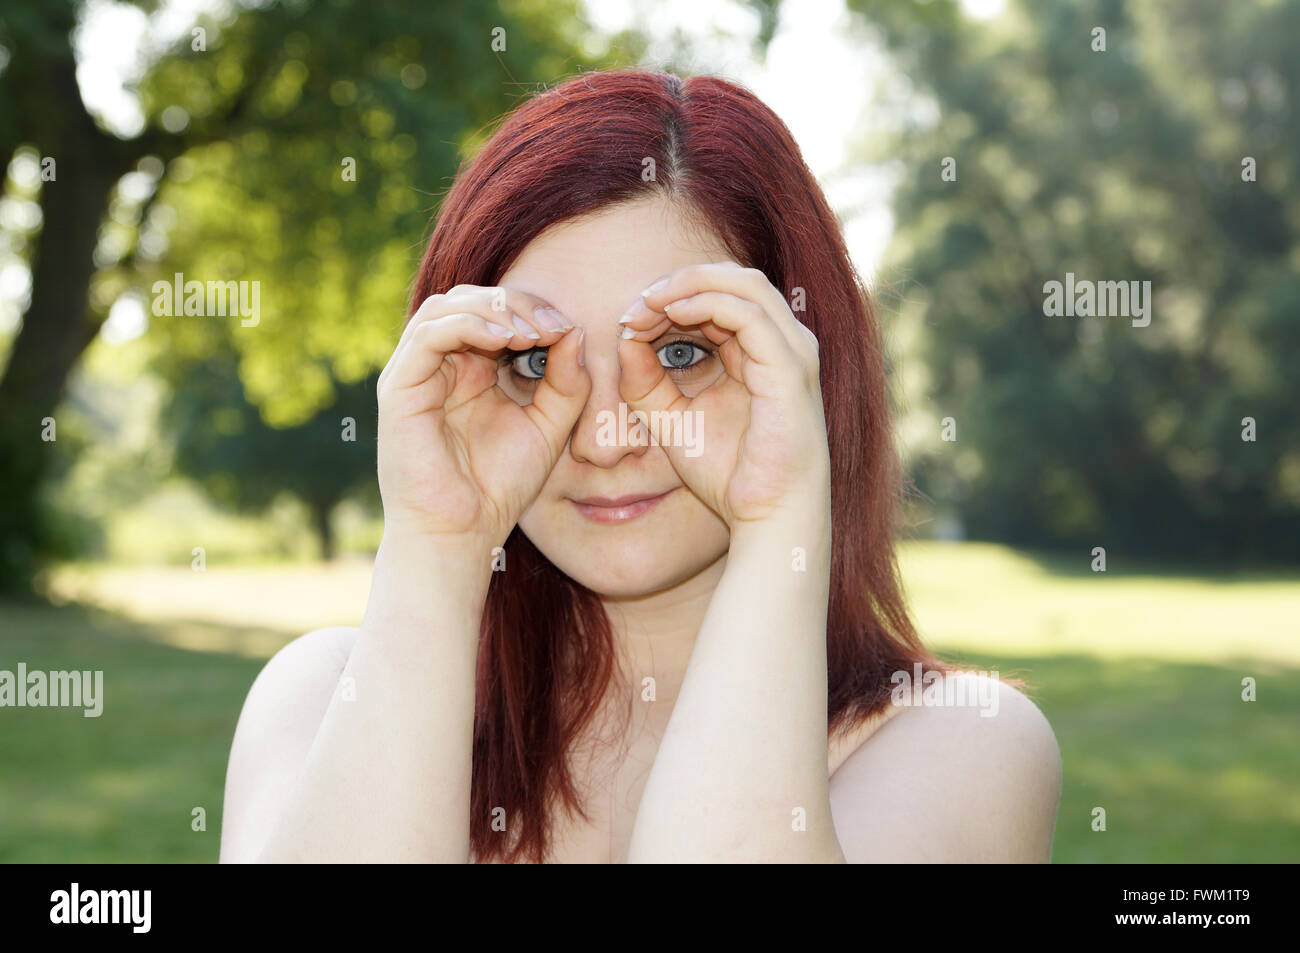 Portrait Of Young Woman Peering Through Hands In Park - Stock Image